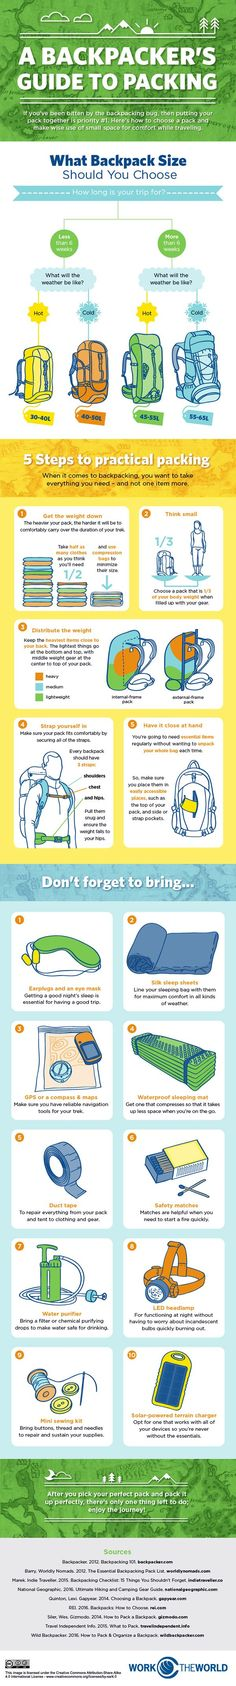 Here's how #backpackers to choose a pack and make the best out of it's space when packing. Source: http://www.worktheworld.com